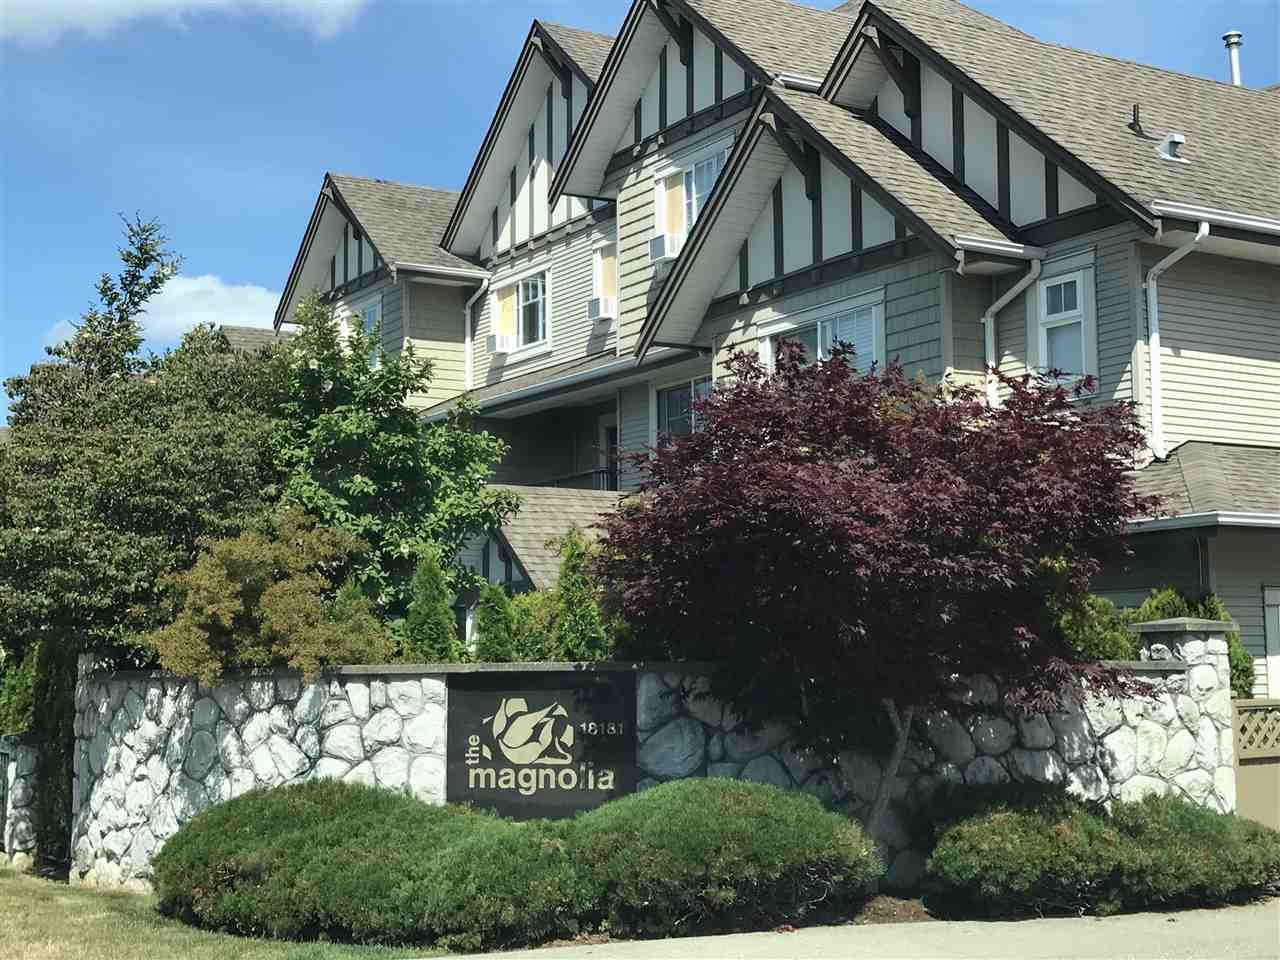 """Main Photo: 14 18181 68 Avenue in Surrey: Cloverdale BC Townhouse for sale in """"Magnolia"""" (Cloverdale)  : MLS®# R2381409"""